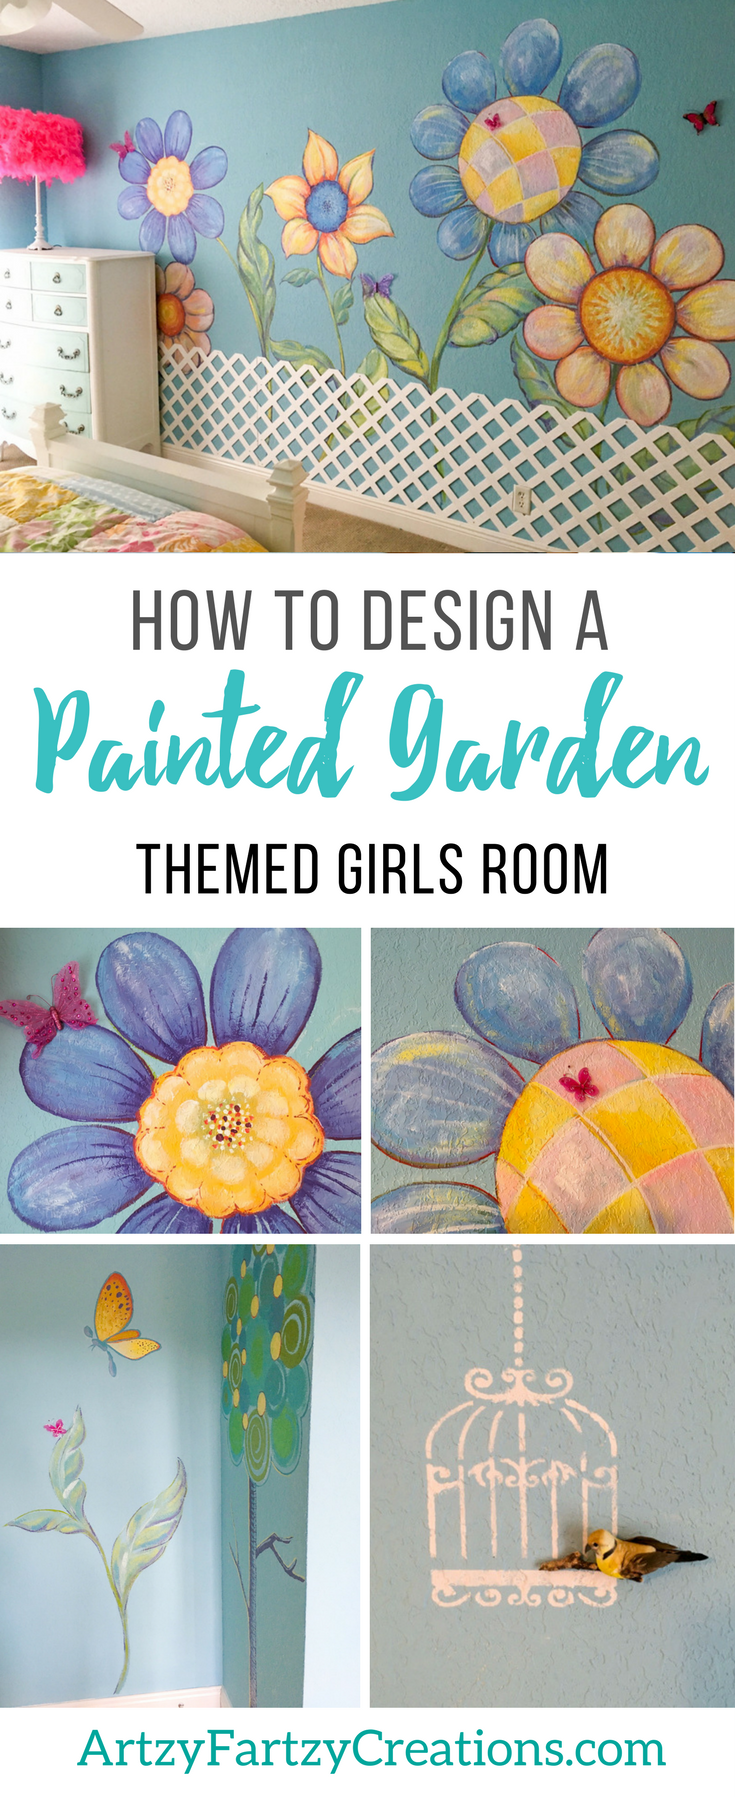 How to design a Garden-themed GIrls Bedroom by Cheryl Phan | Girls Bedroom Ideas | Mural Ideas | Secret Garden | Faux FInishing